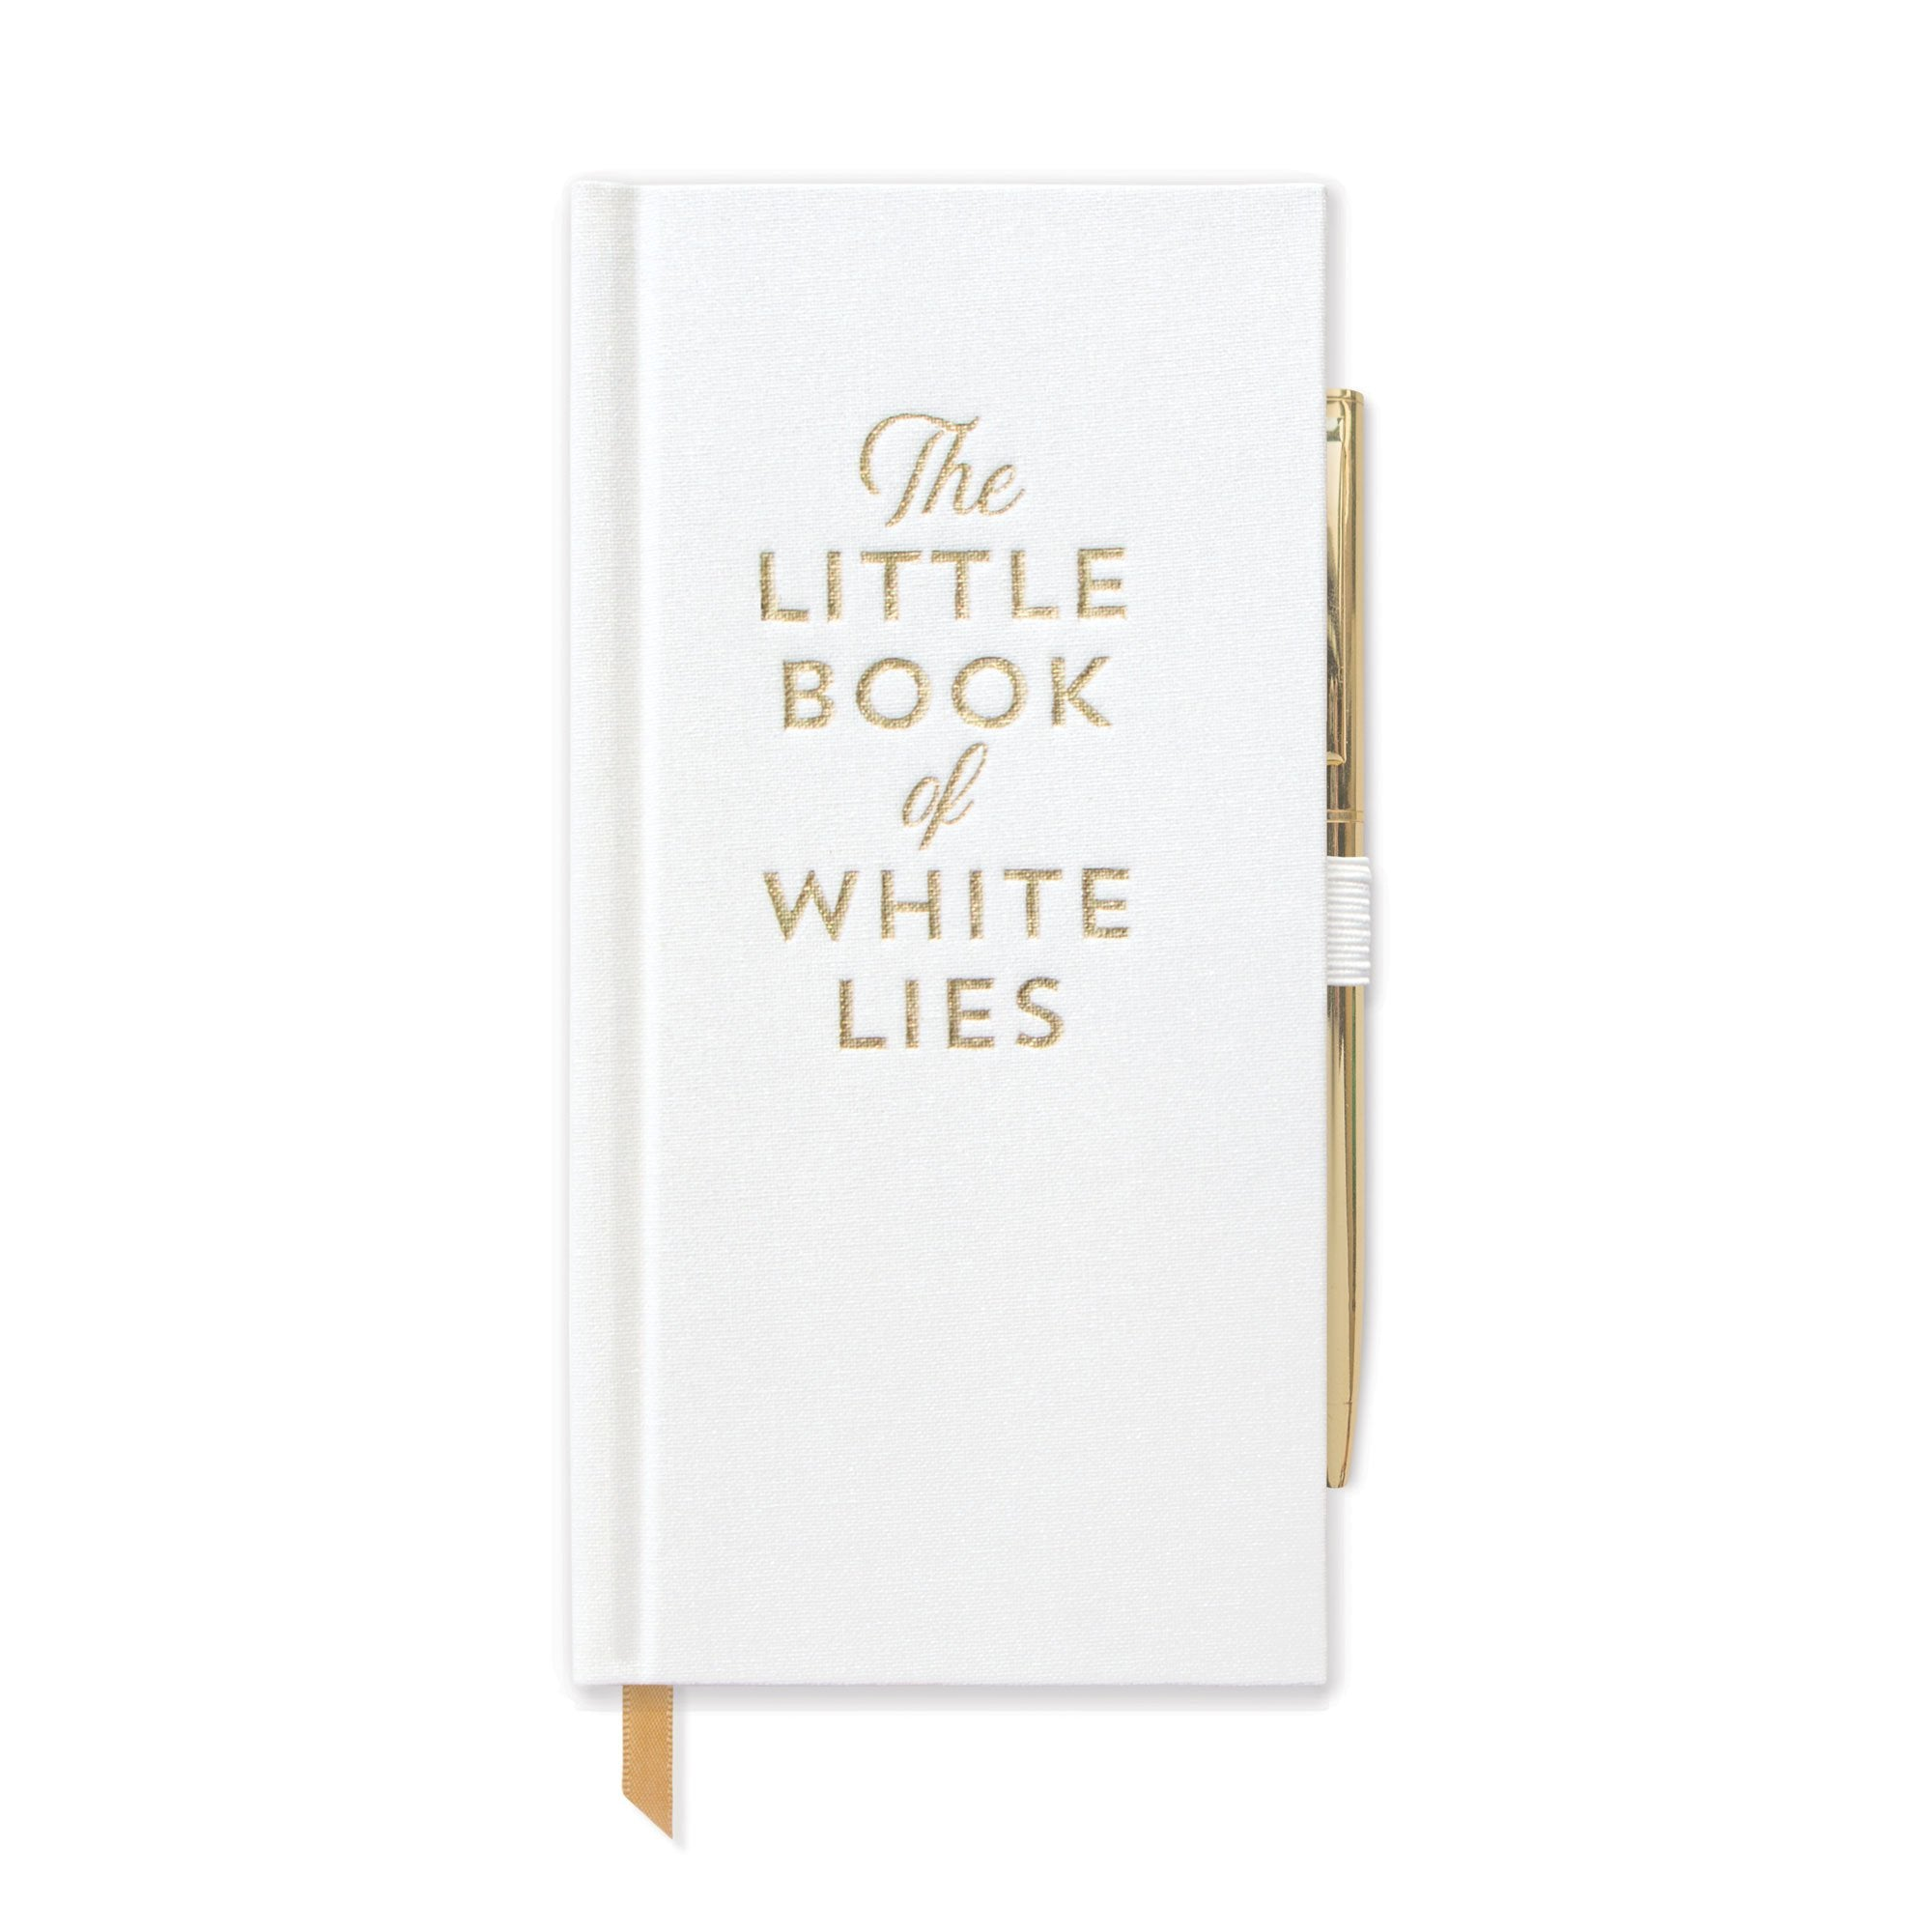 The Little Book of White Lies